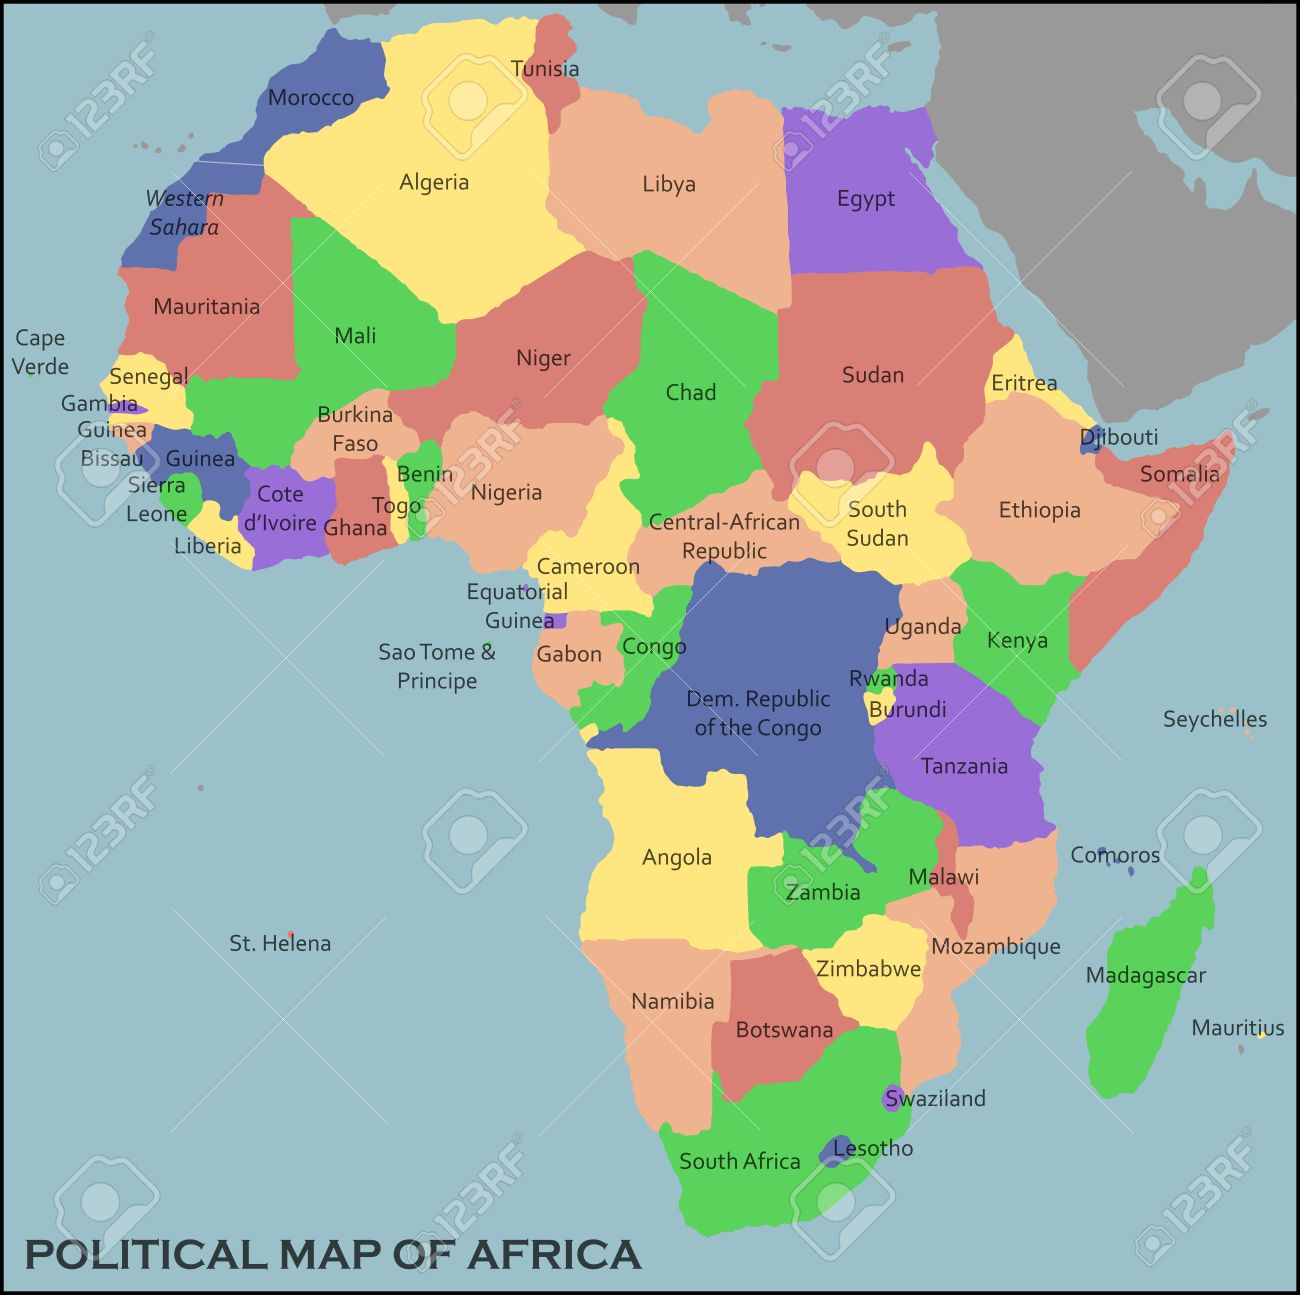 Political Map Of Africa Royalty Free Cliparts Vectors And Stock - Political map of africa